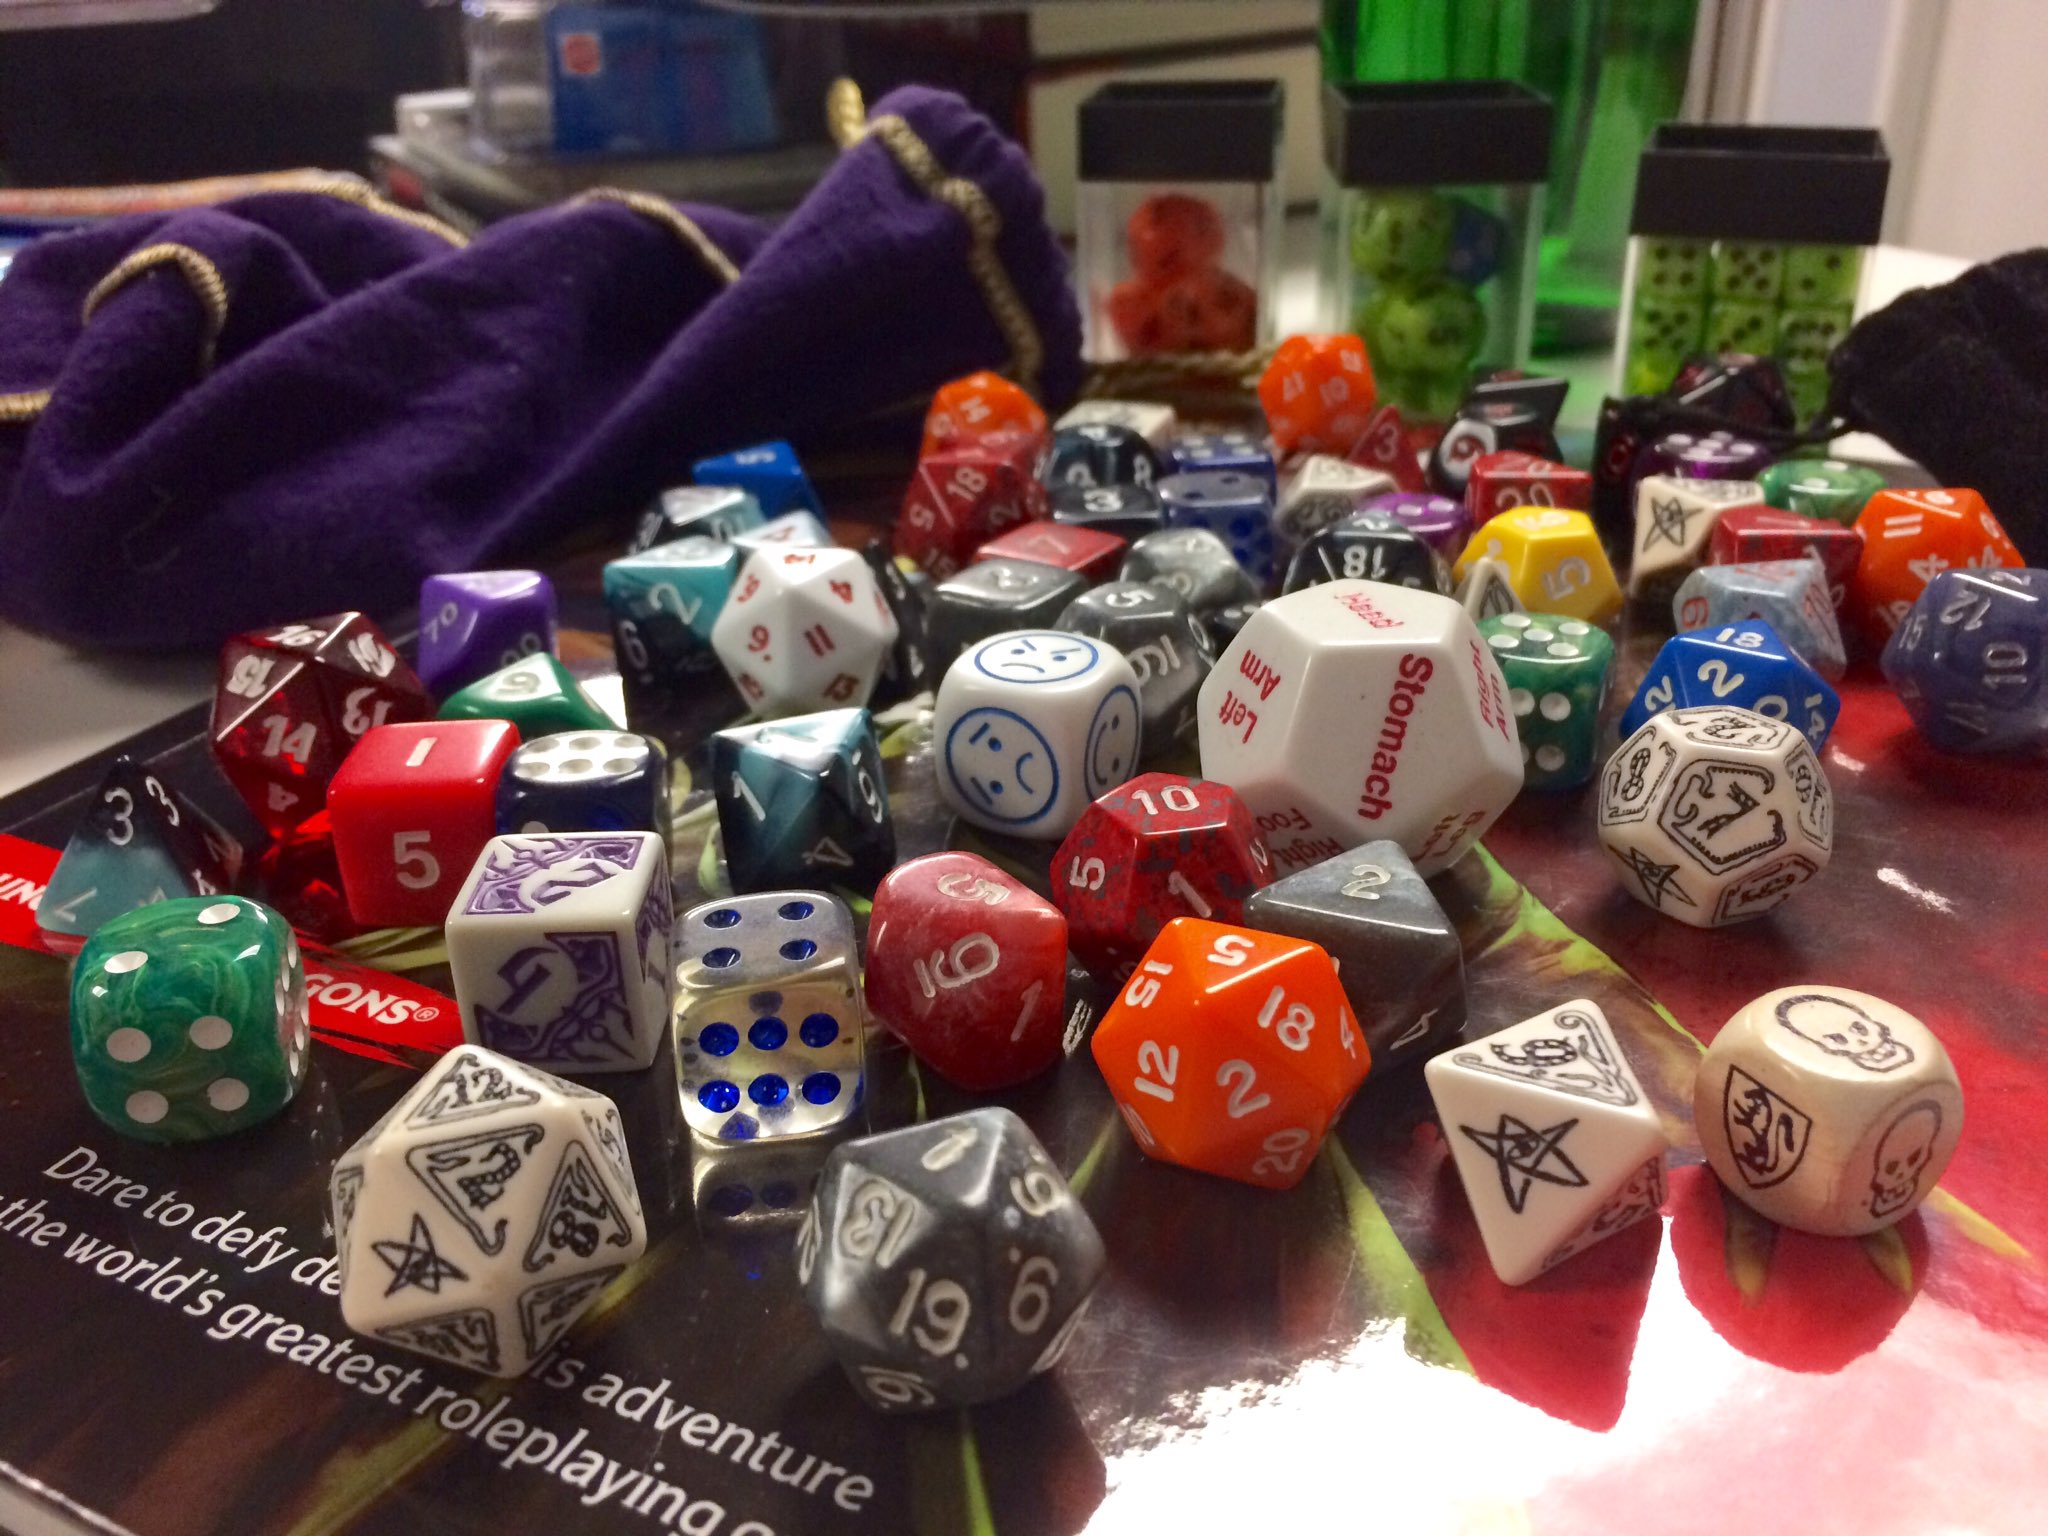 Celebrating #NationalDiceDay with some old friends. Show us your dice! https://t.co/dOegHZjM6T